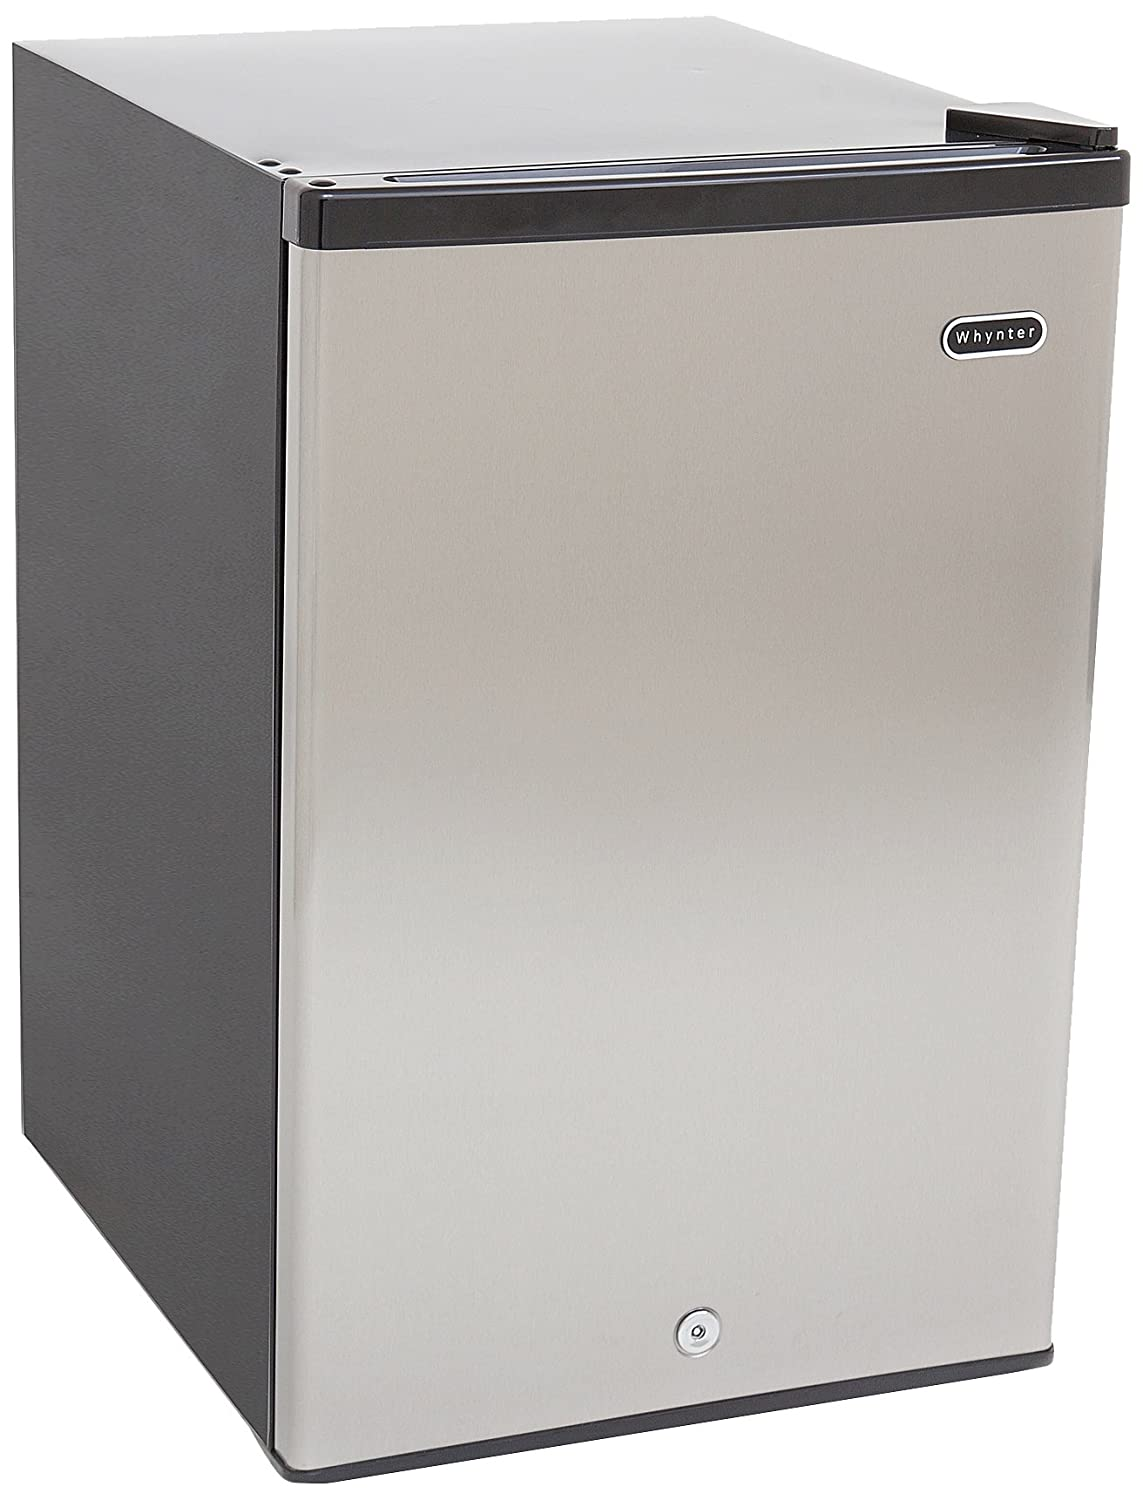 Vertical Freezers For Sale Amazoncom Whynter Cuf 210ss Energy Star Upright Freezer 21